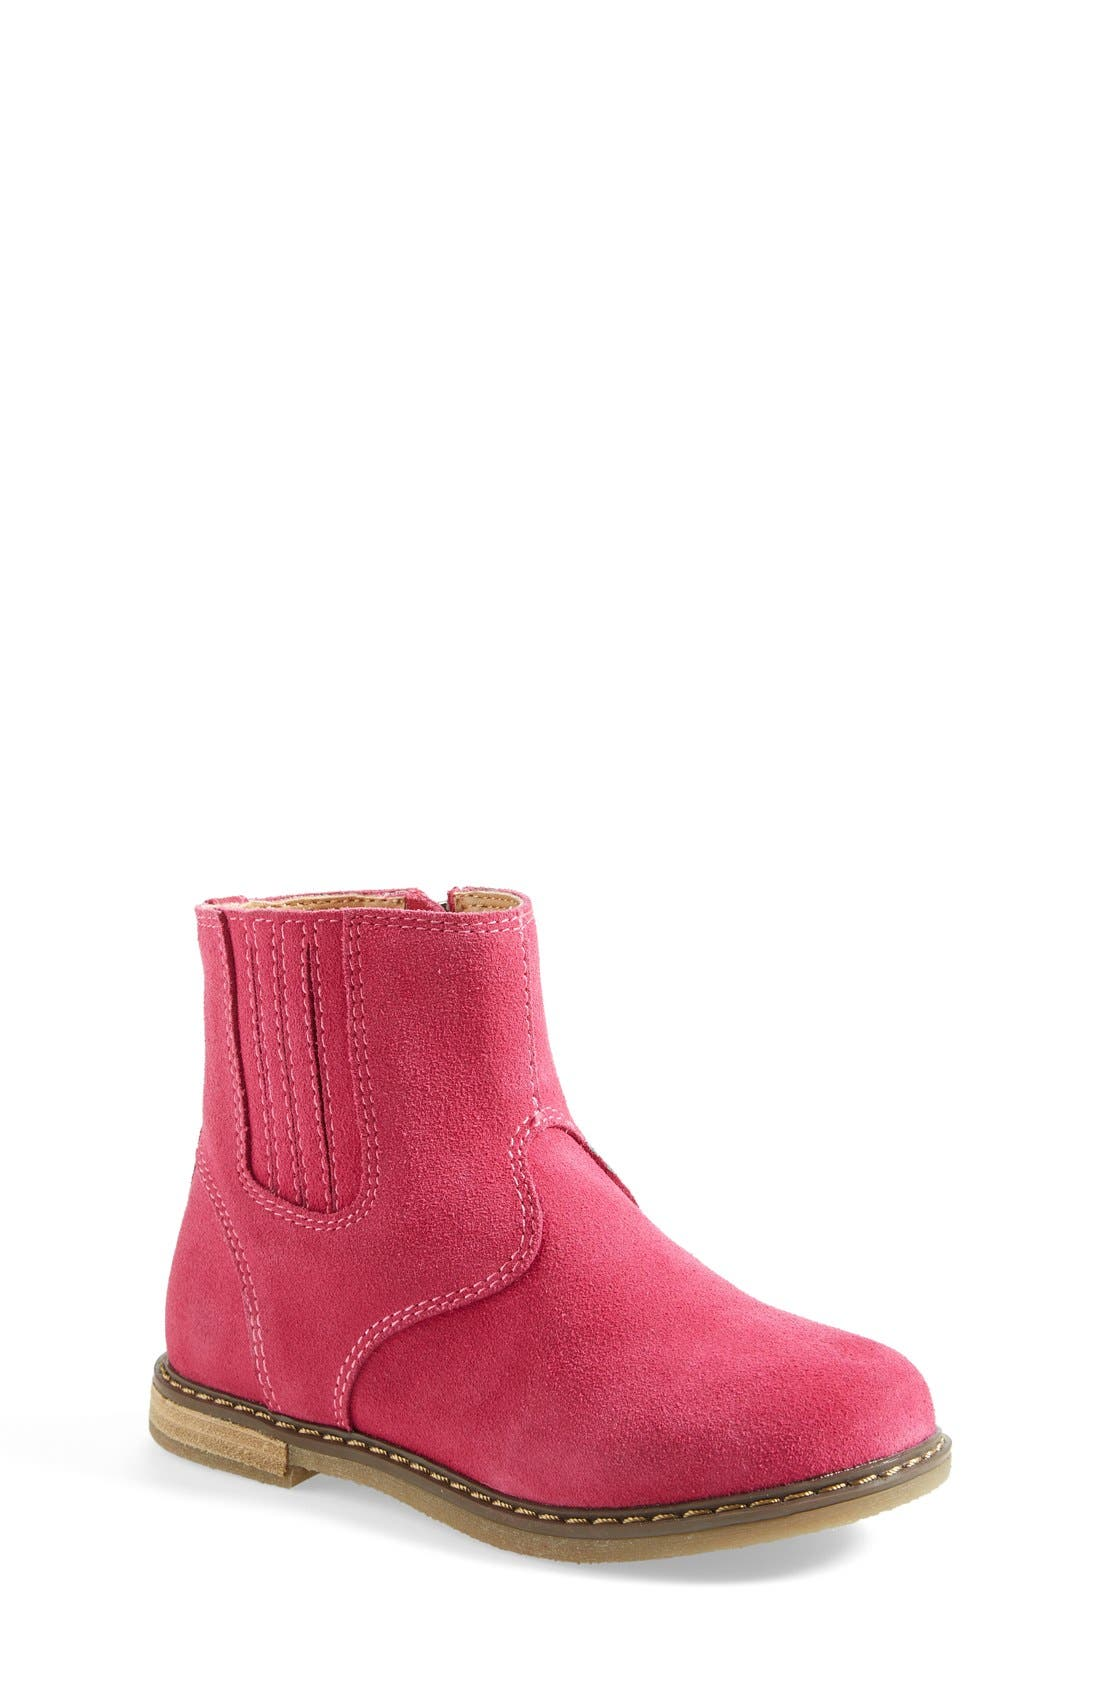 Main Image - Tucker + Tate 'Tegan' Ankle Bootie (Toddler & Little Kid)